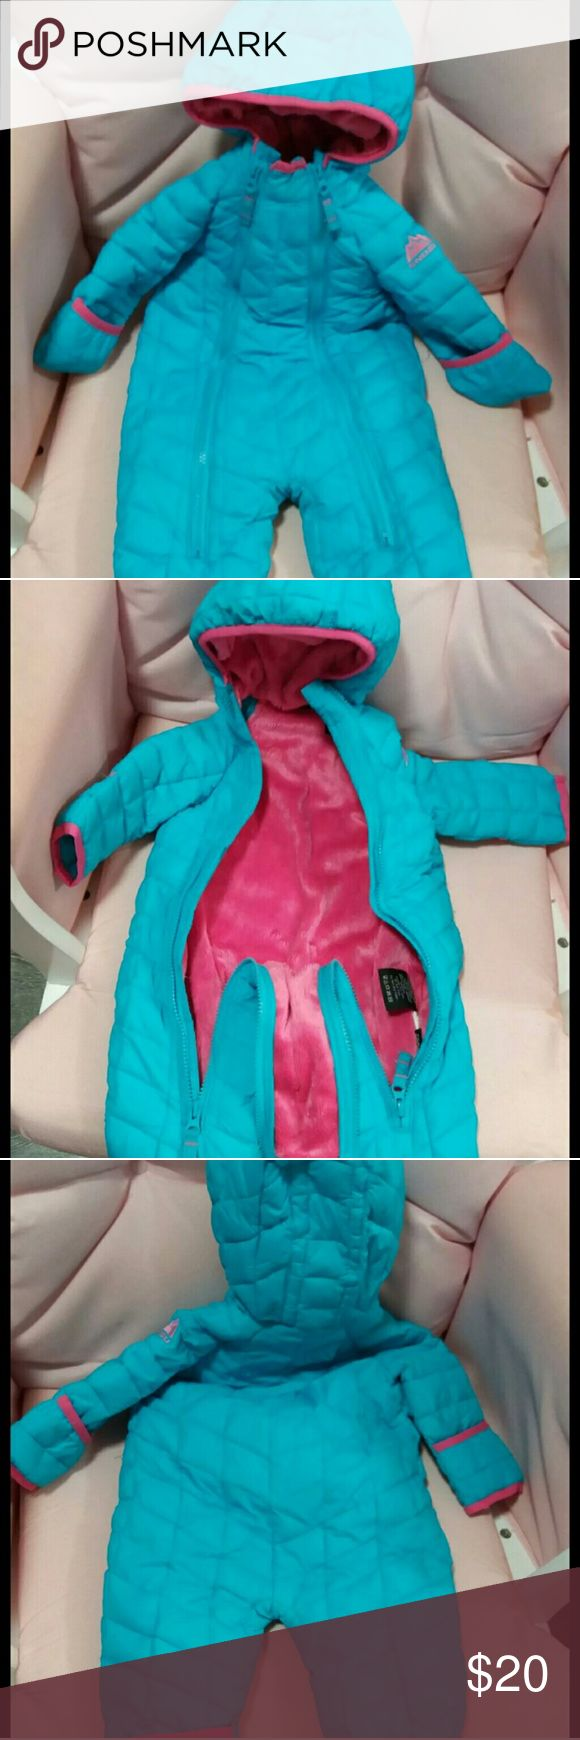 Winter snow suit coat size 3-6 months 3-6 month old bright blue winter snow coat with plush pink inner linning Jackets & Coats Puffers